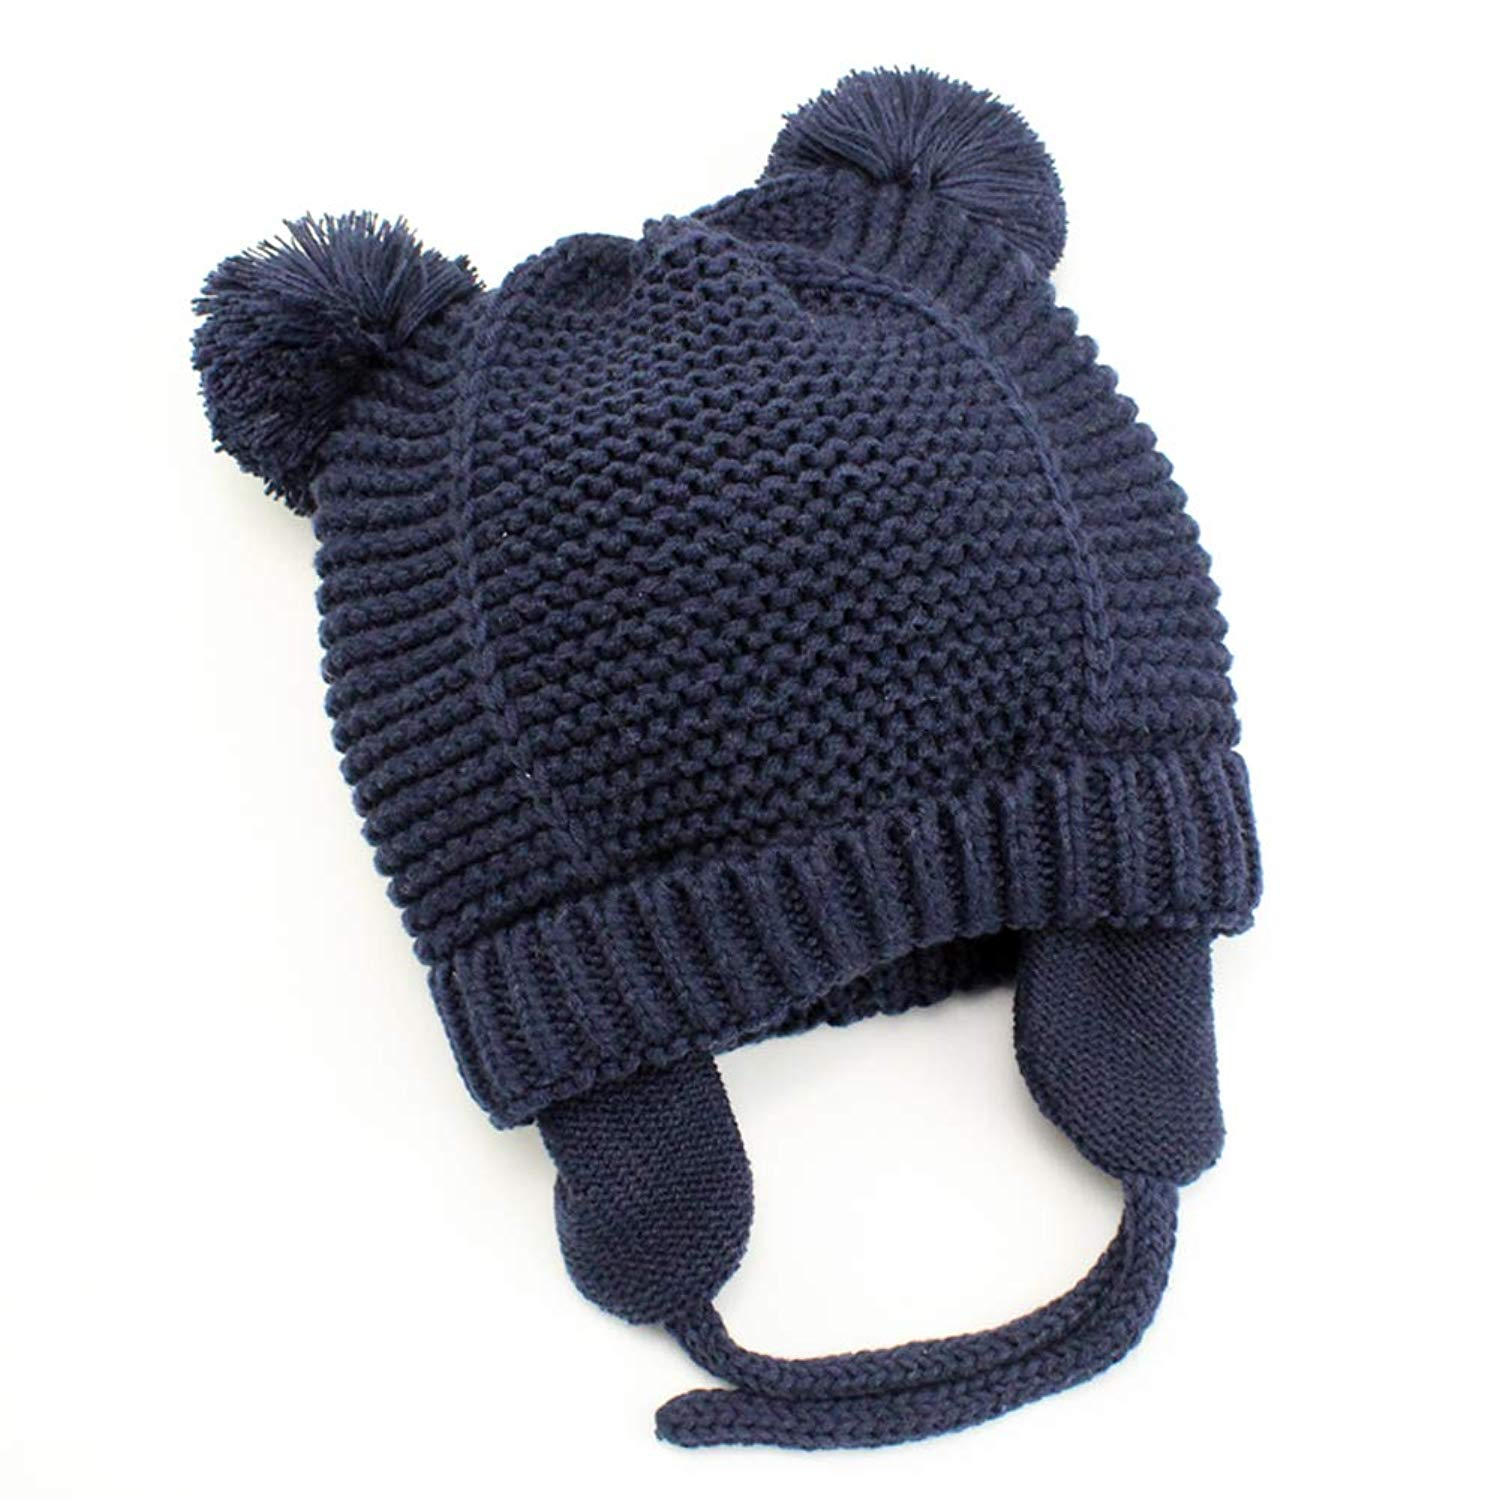 a1e546a61c2 Get Quotations · Baby Beanie Earflaps Hat - Infant Toddler Girls Boys Soft Warm  Knit Hat Kids Winter Hat